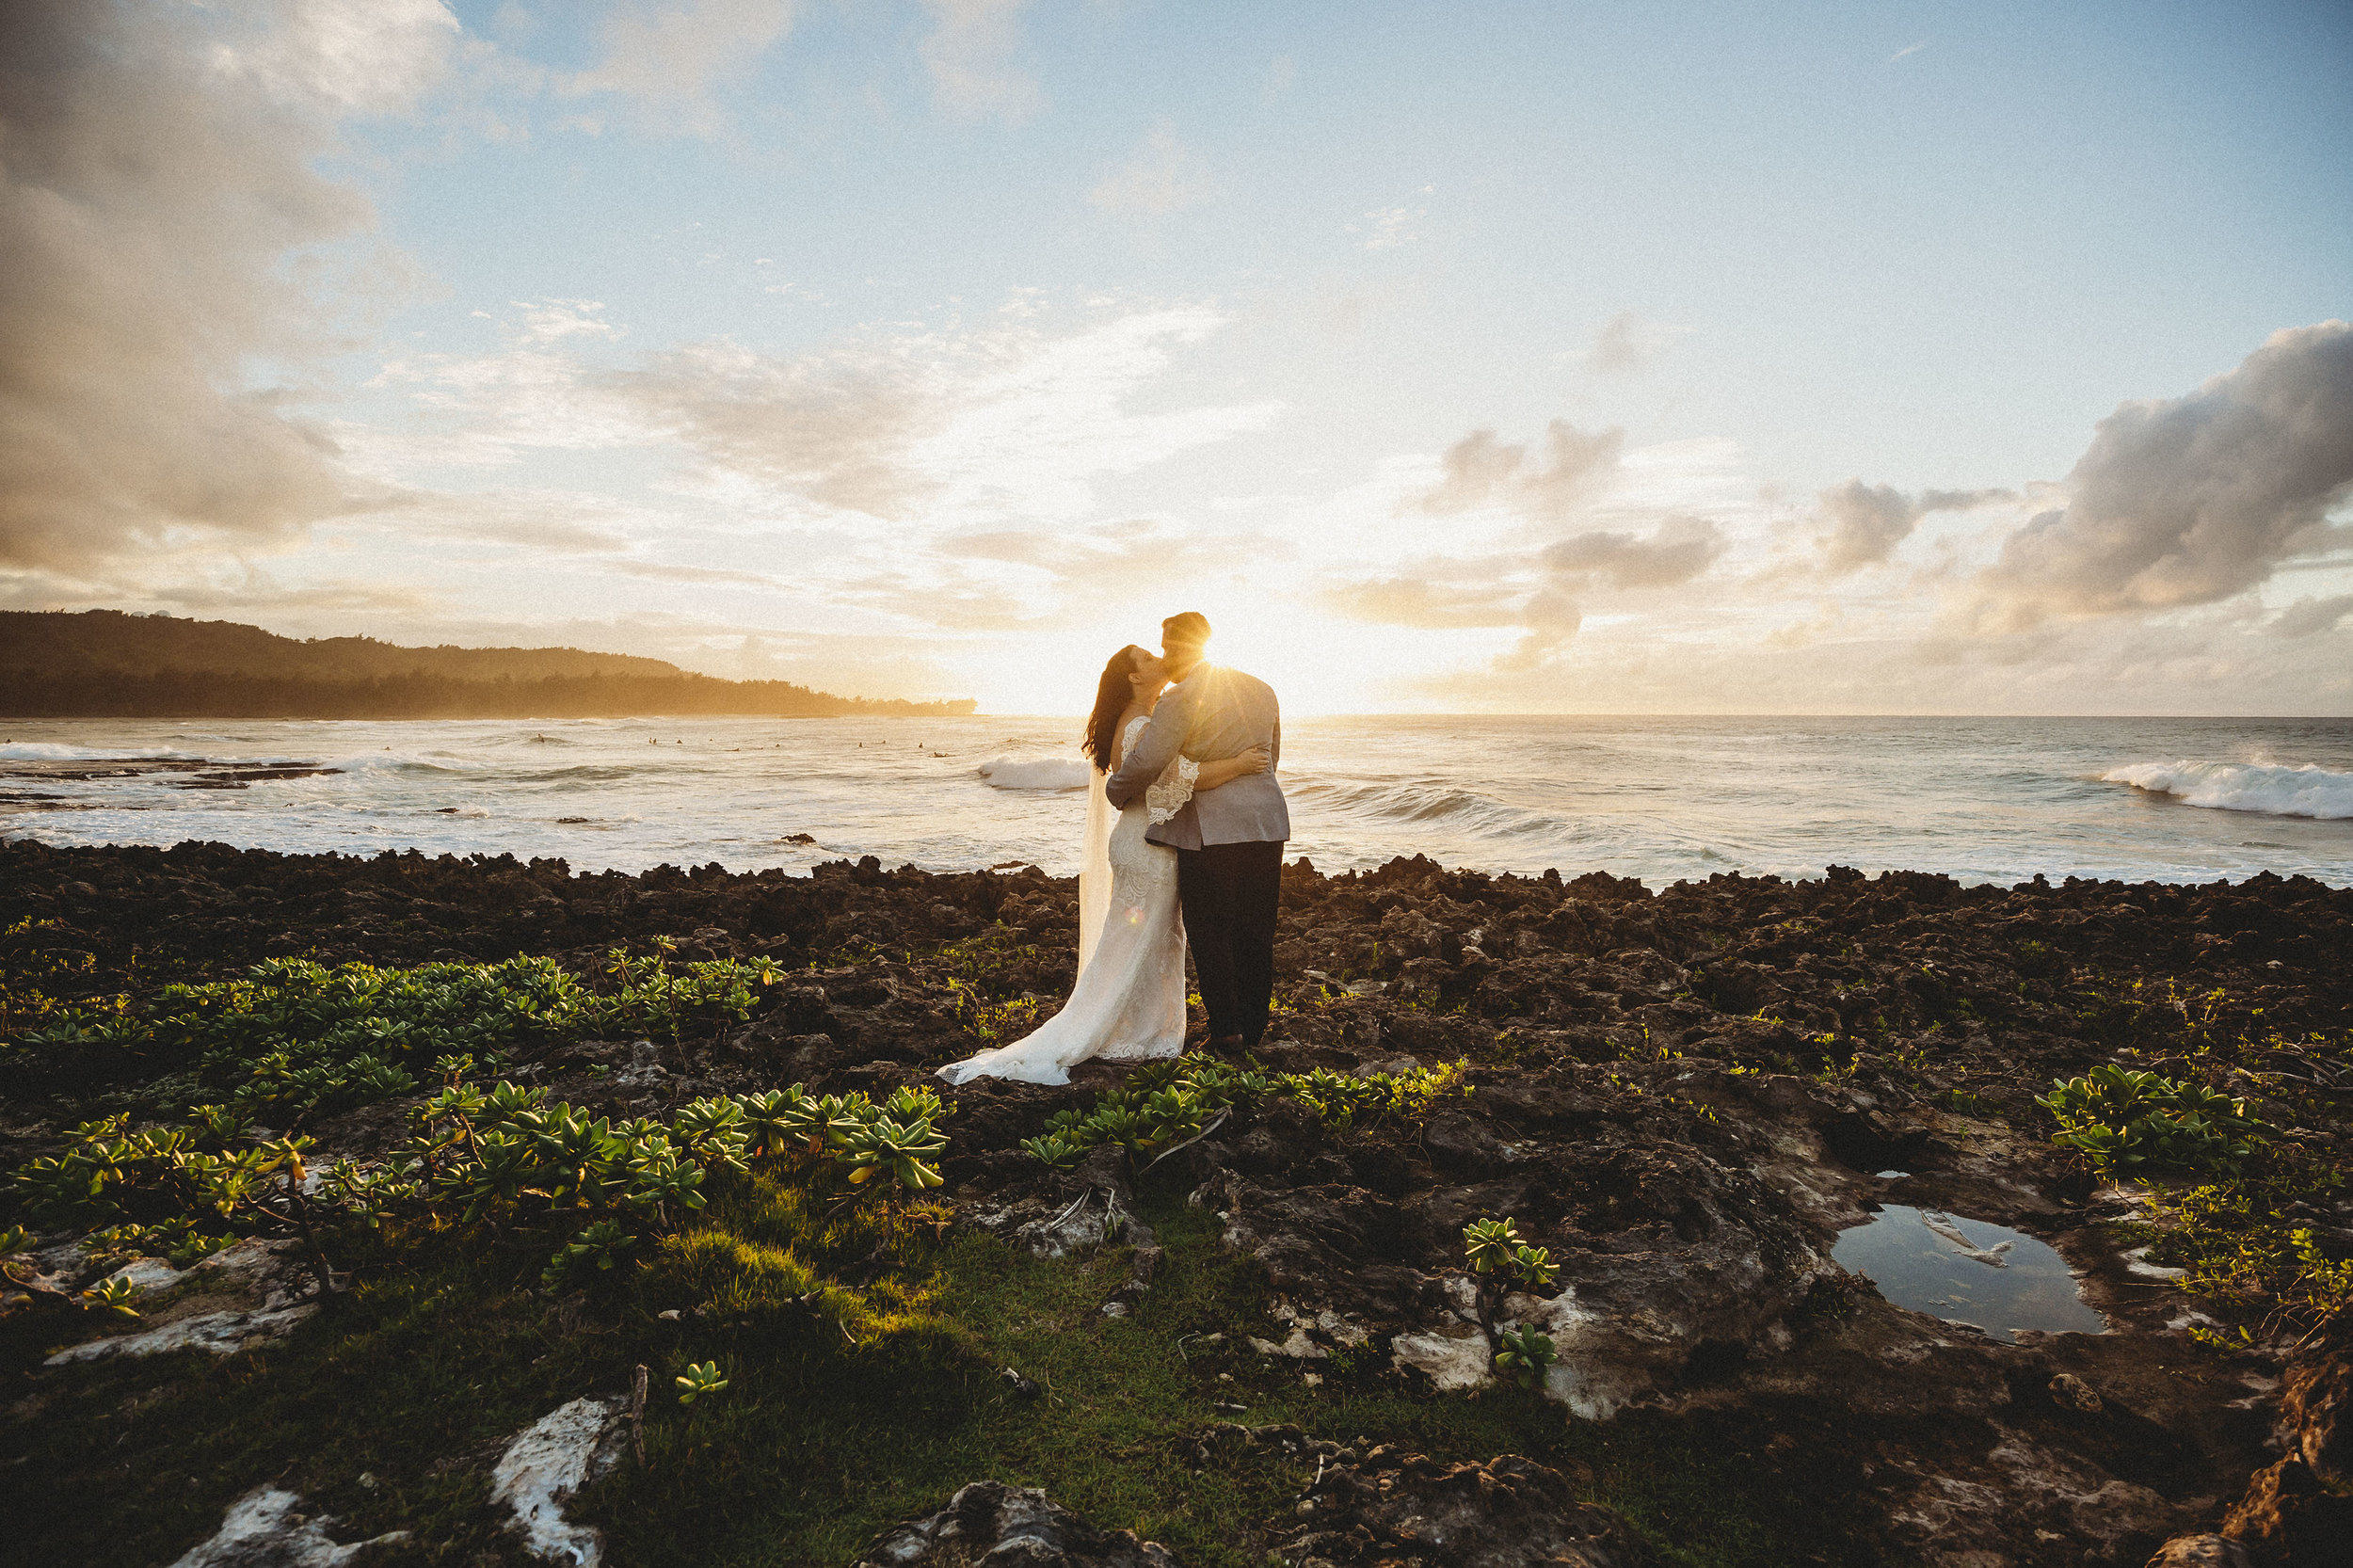 Nicolette+Dean wEDDING -